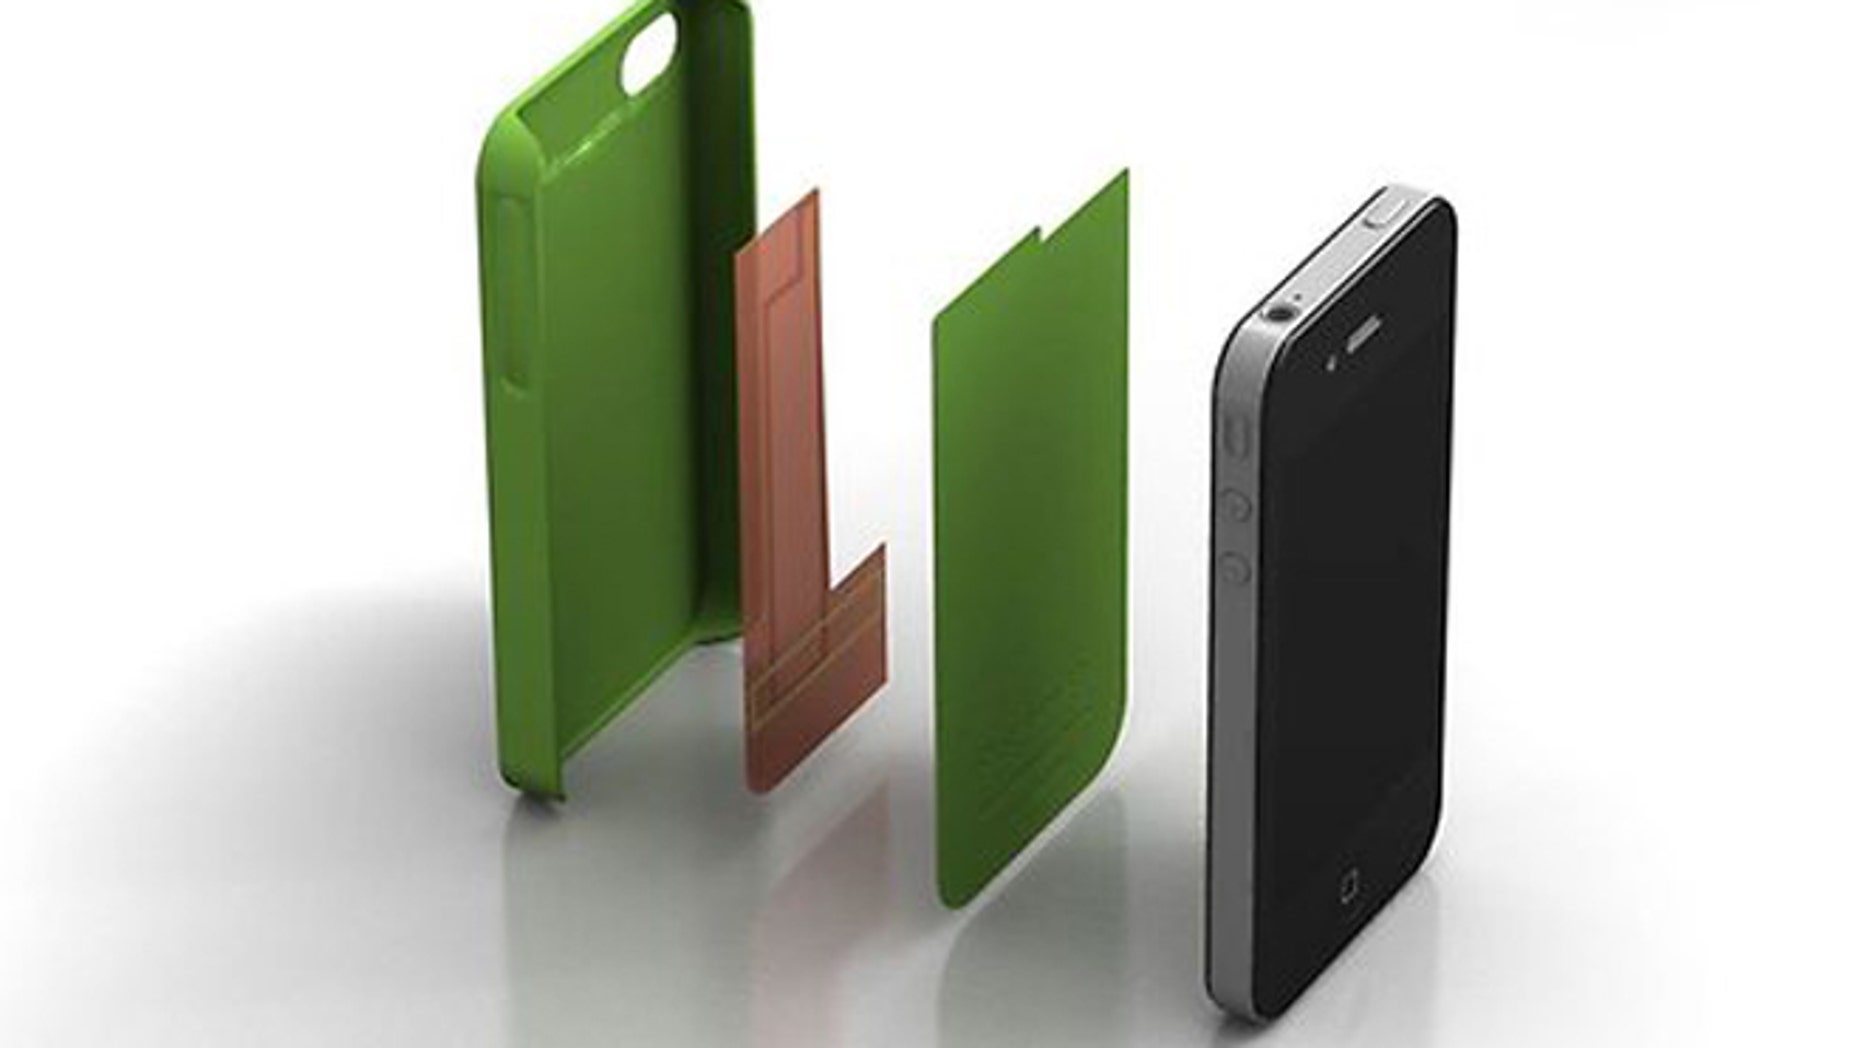 The Pong case has been shown to reduce cellphone radiation by up to 95 percent, the company says.